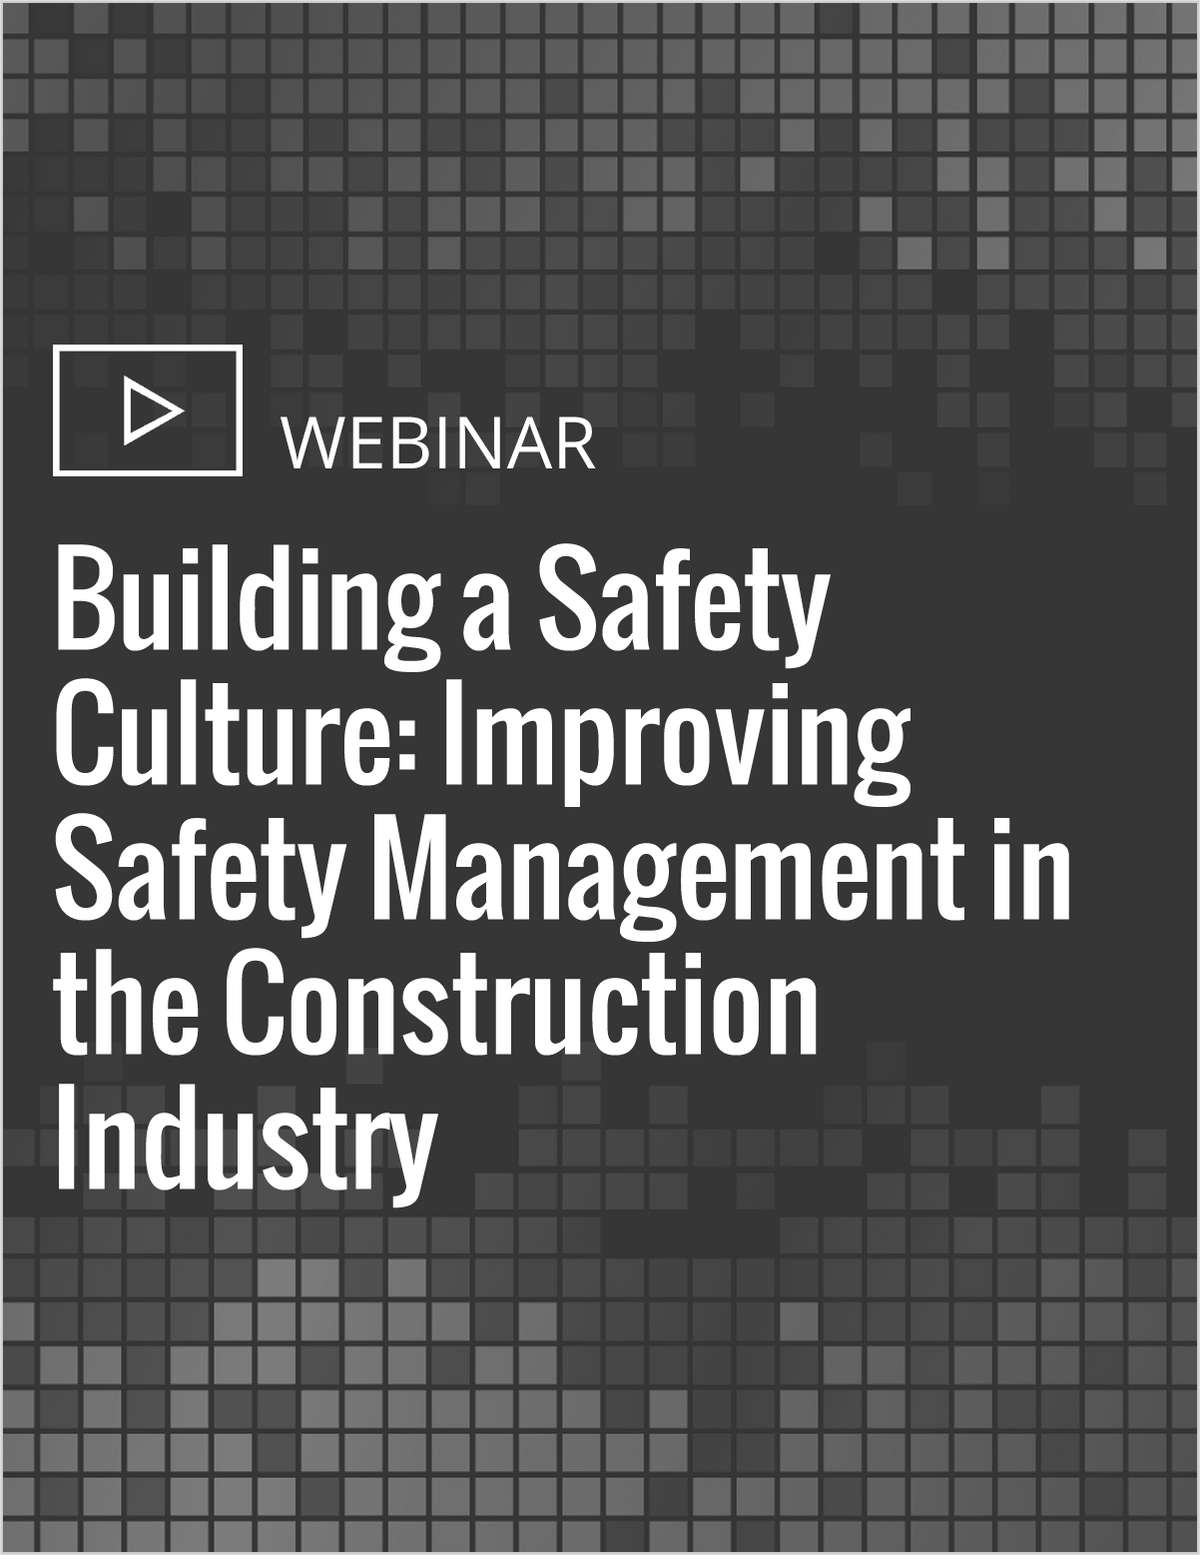 Building a Safety Culture: Improving Safety Management in the Construction Industry